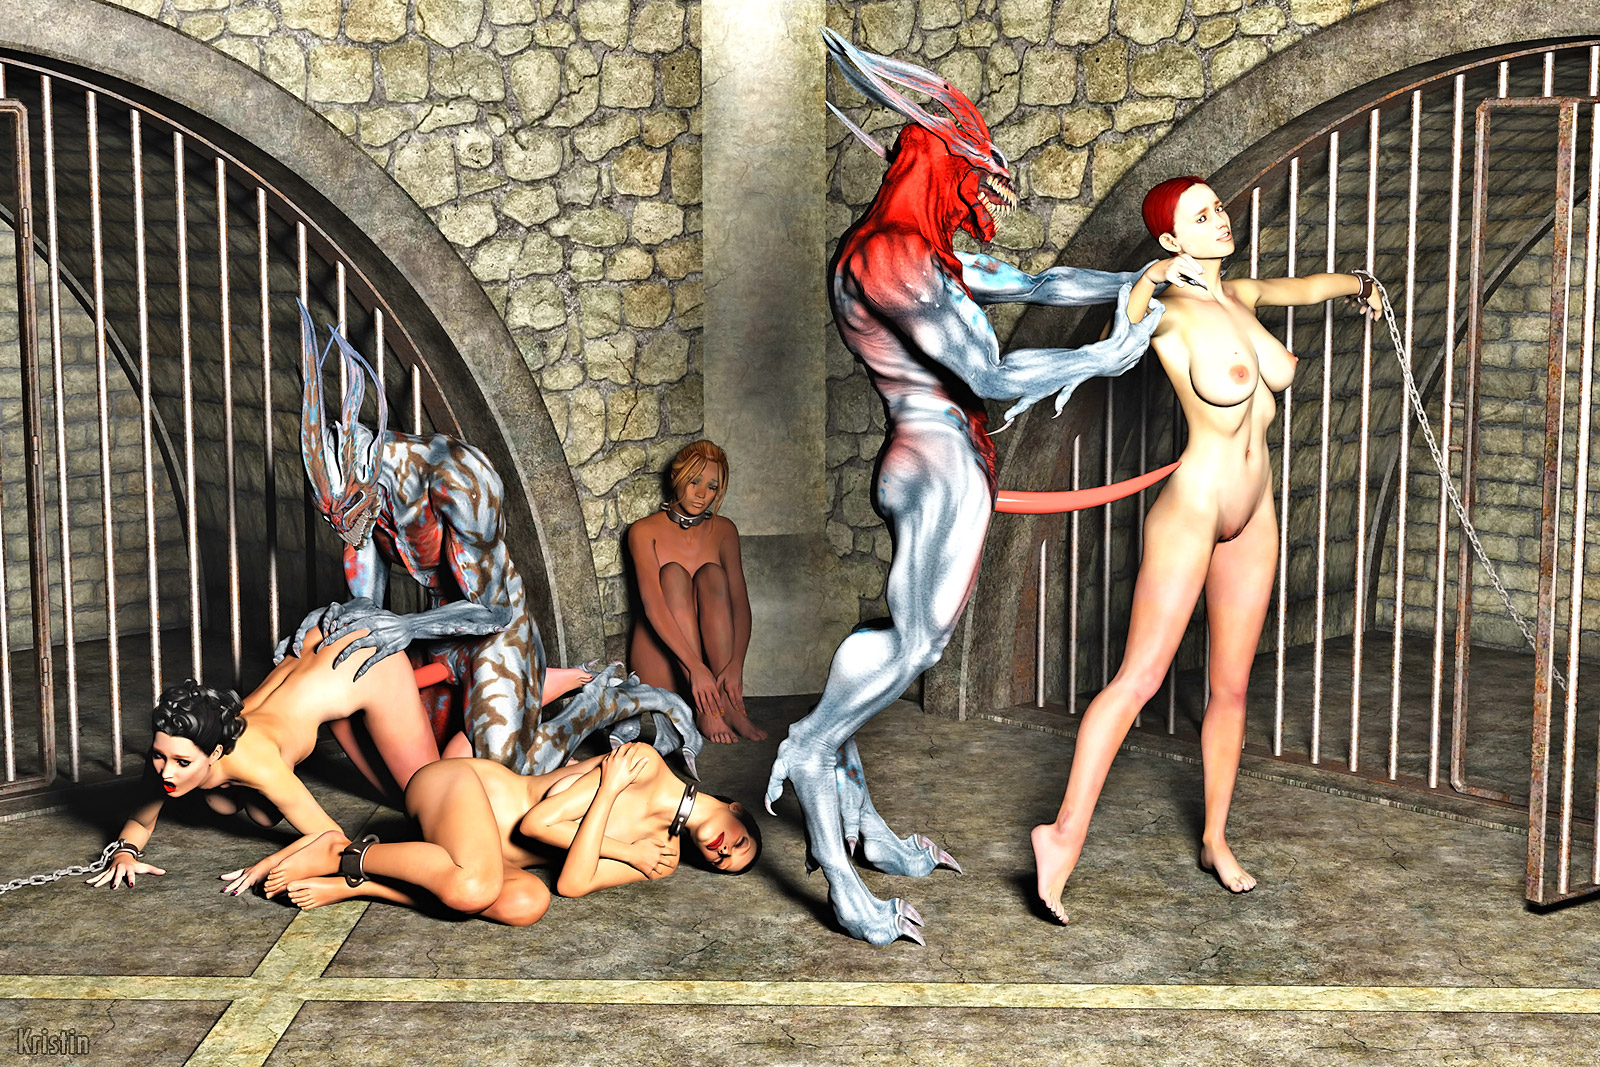 Monster sextoon pics fucked picture